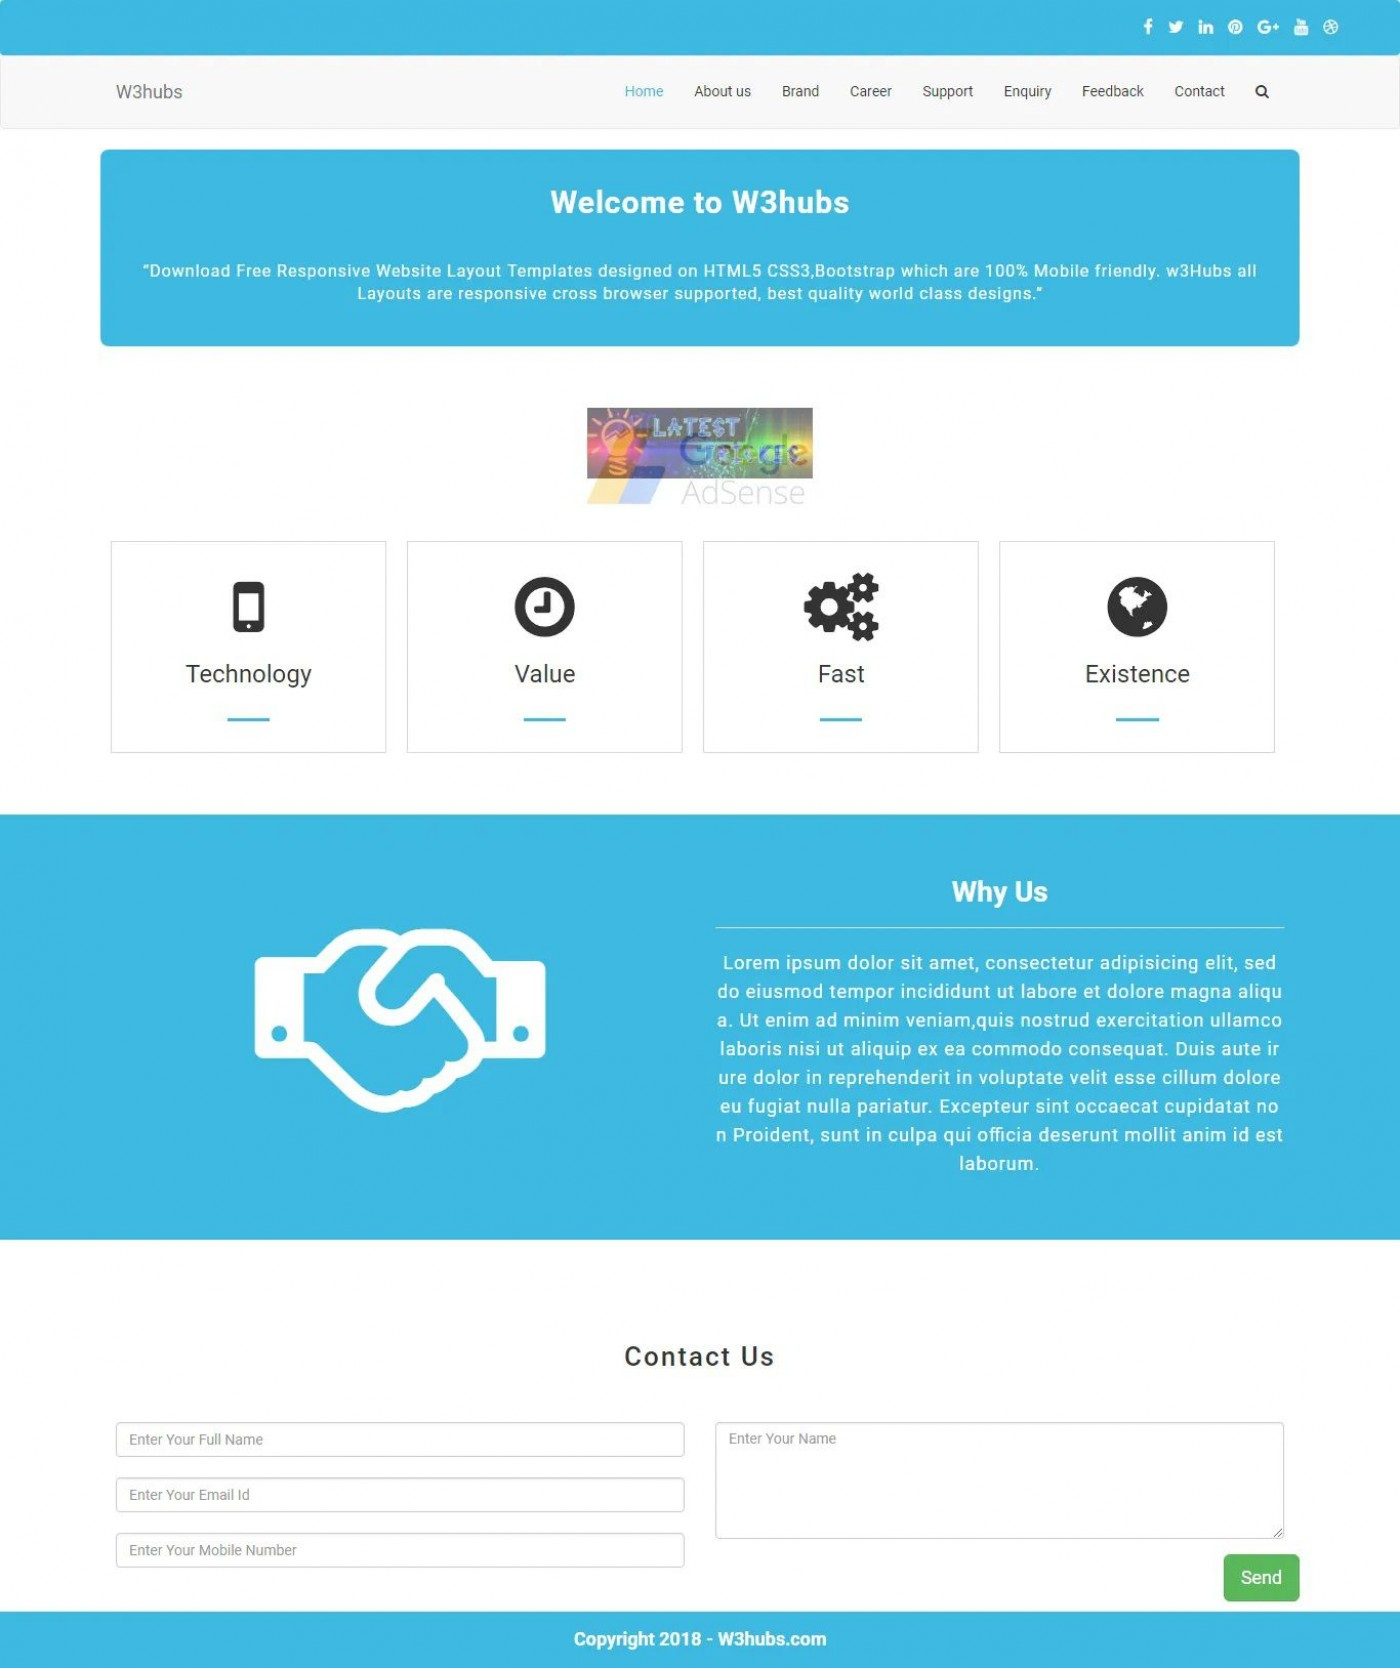 007 Unbelievable Free Php Website Template Photo  Download And Cs Full Theme1400